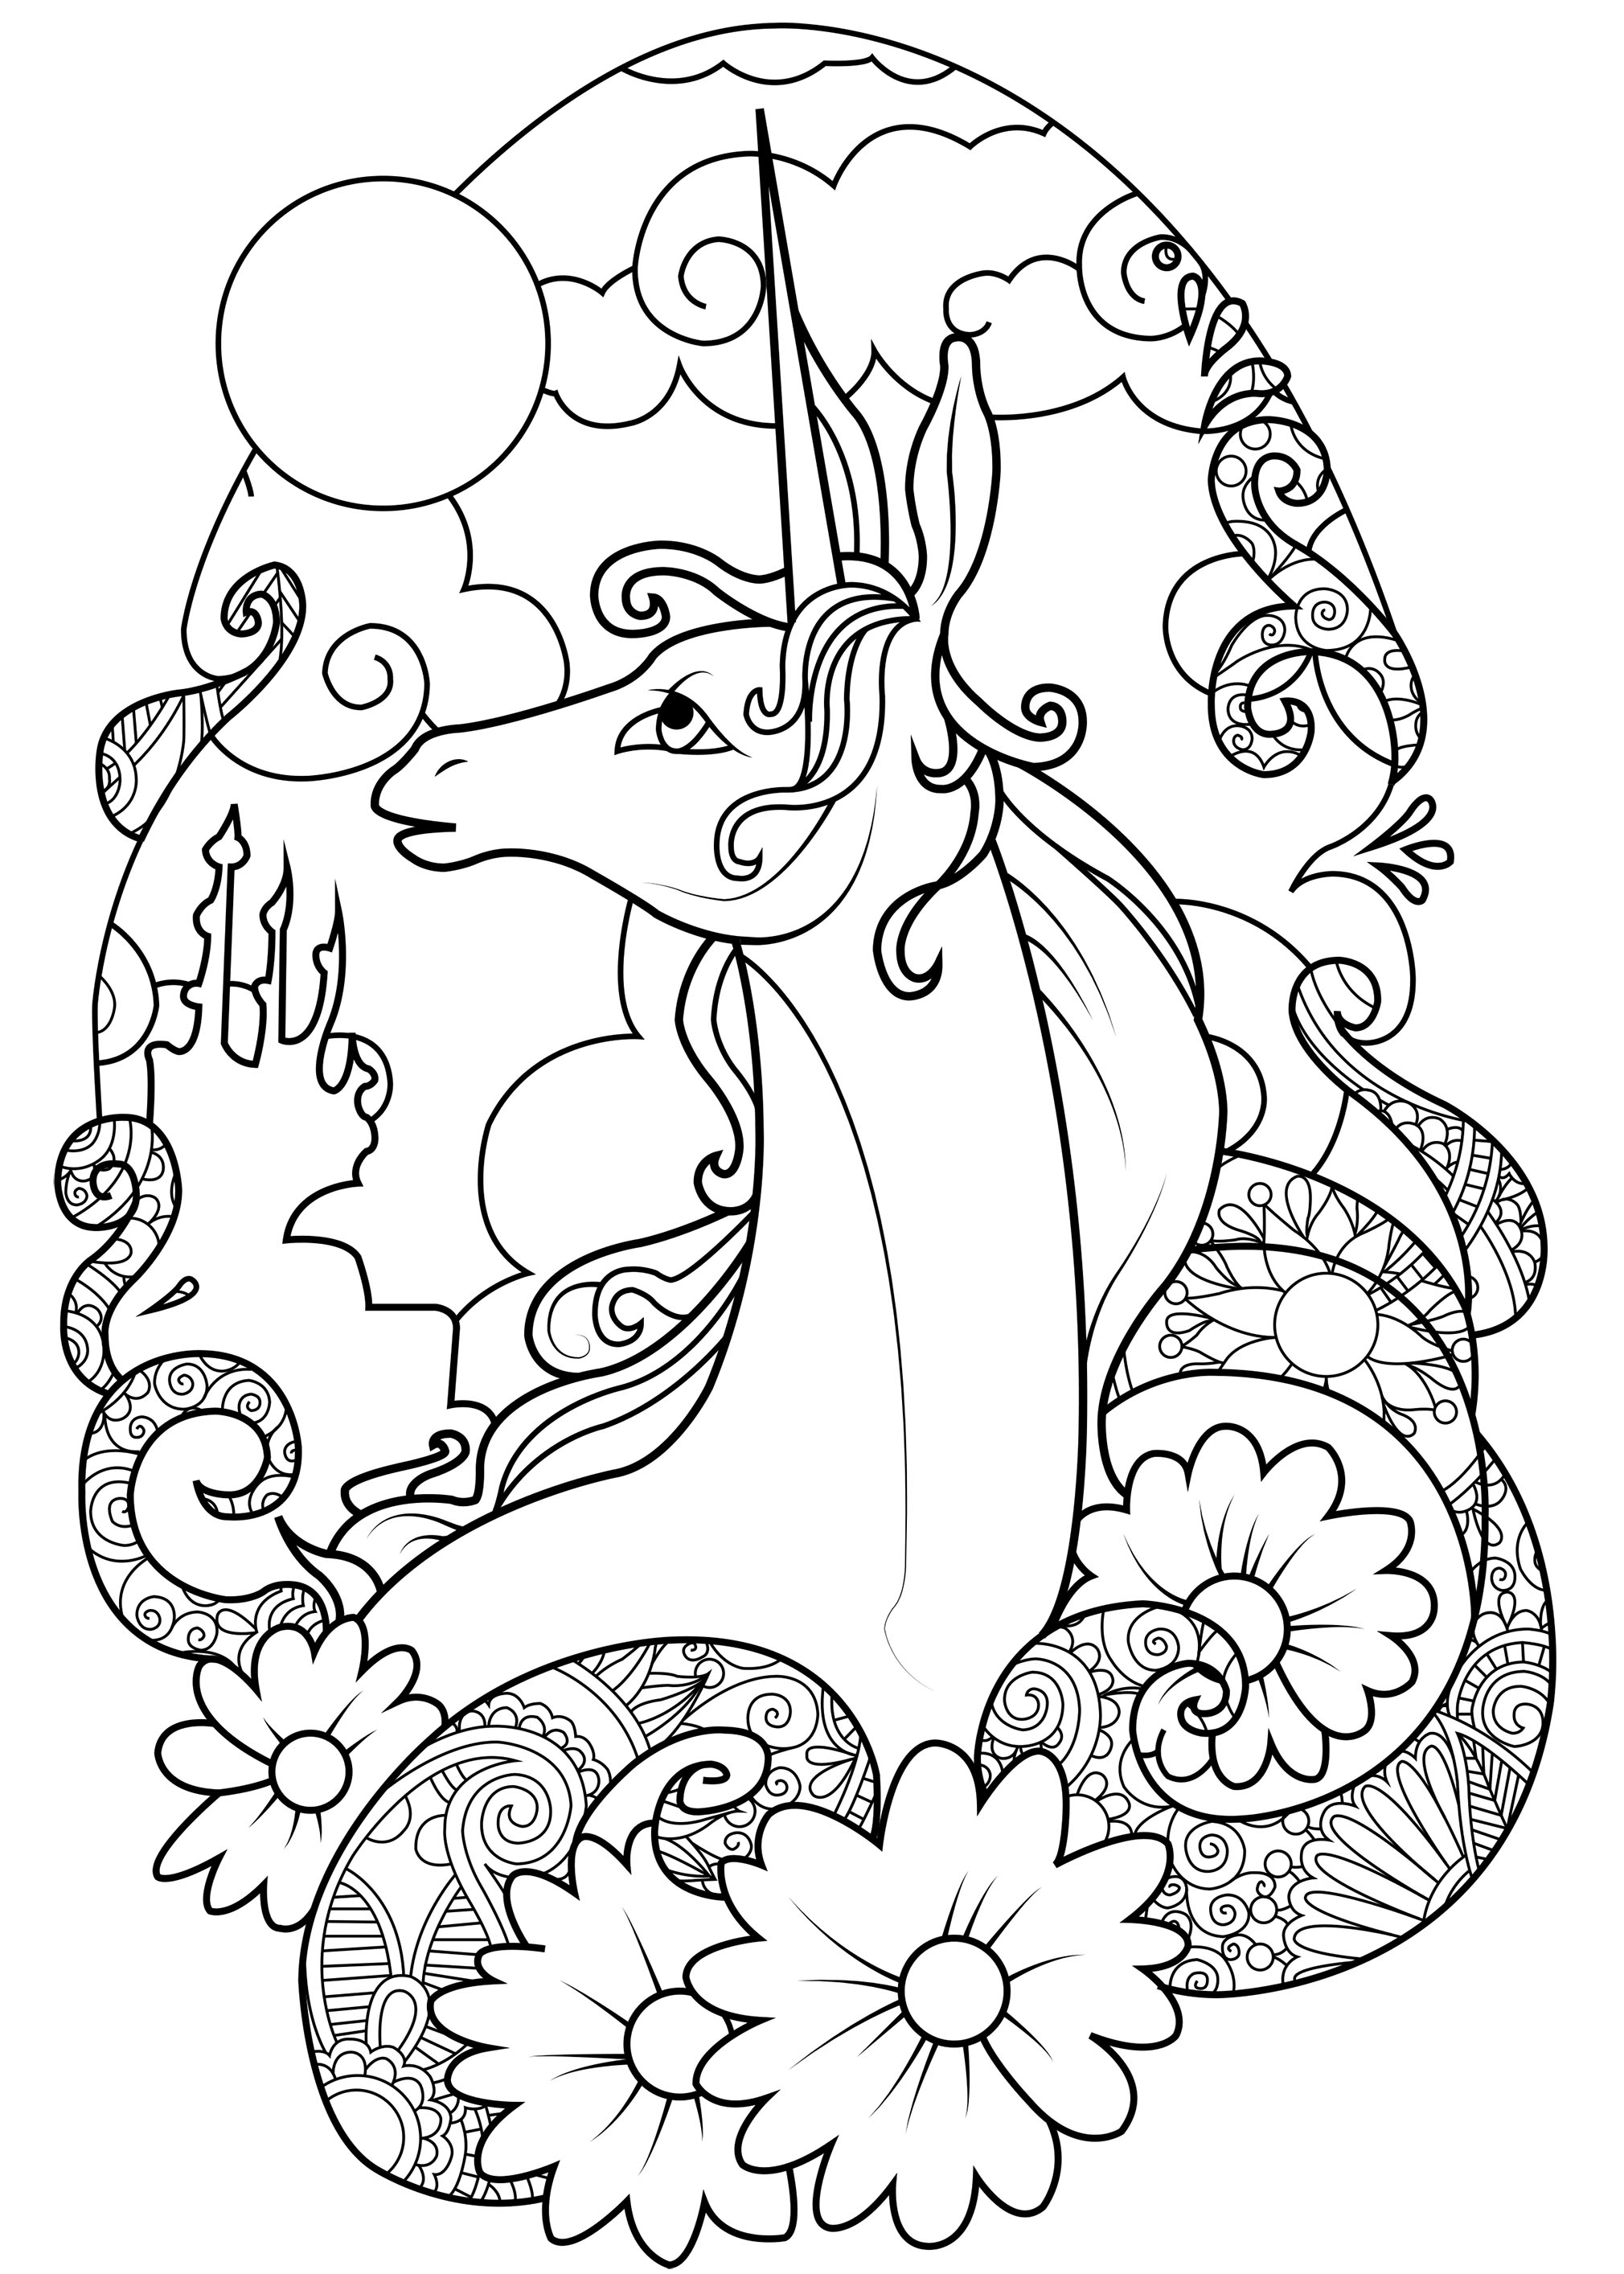 unicorn printables print download unicorn coloring pages for children printables unicorn